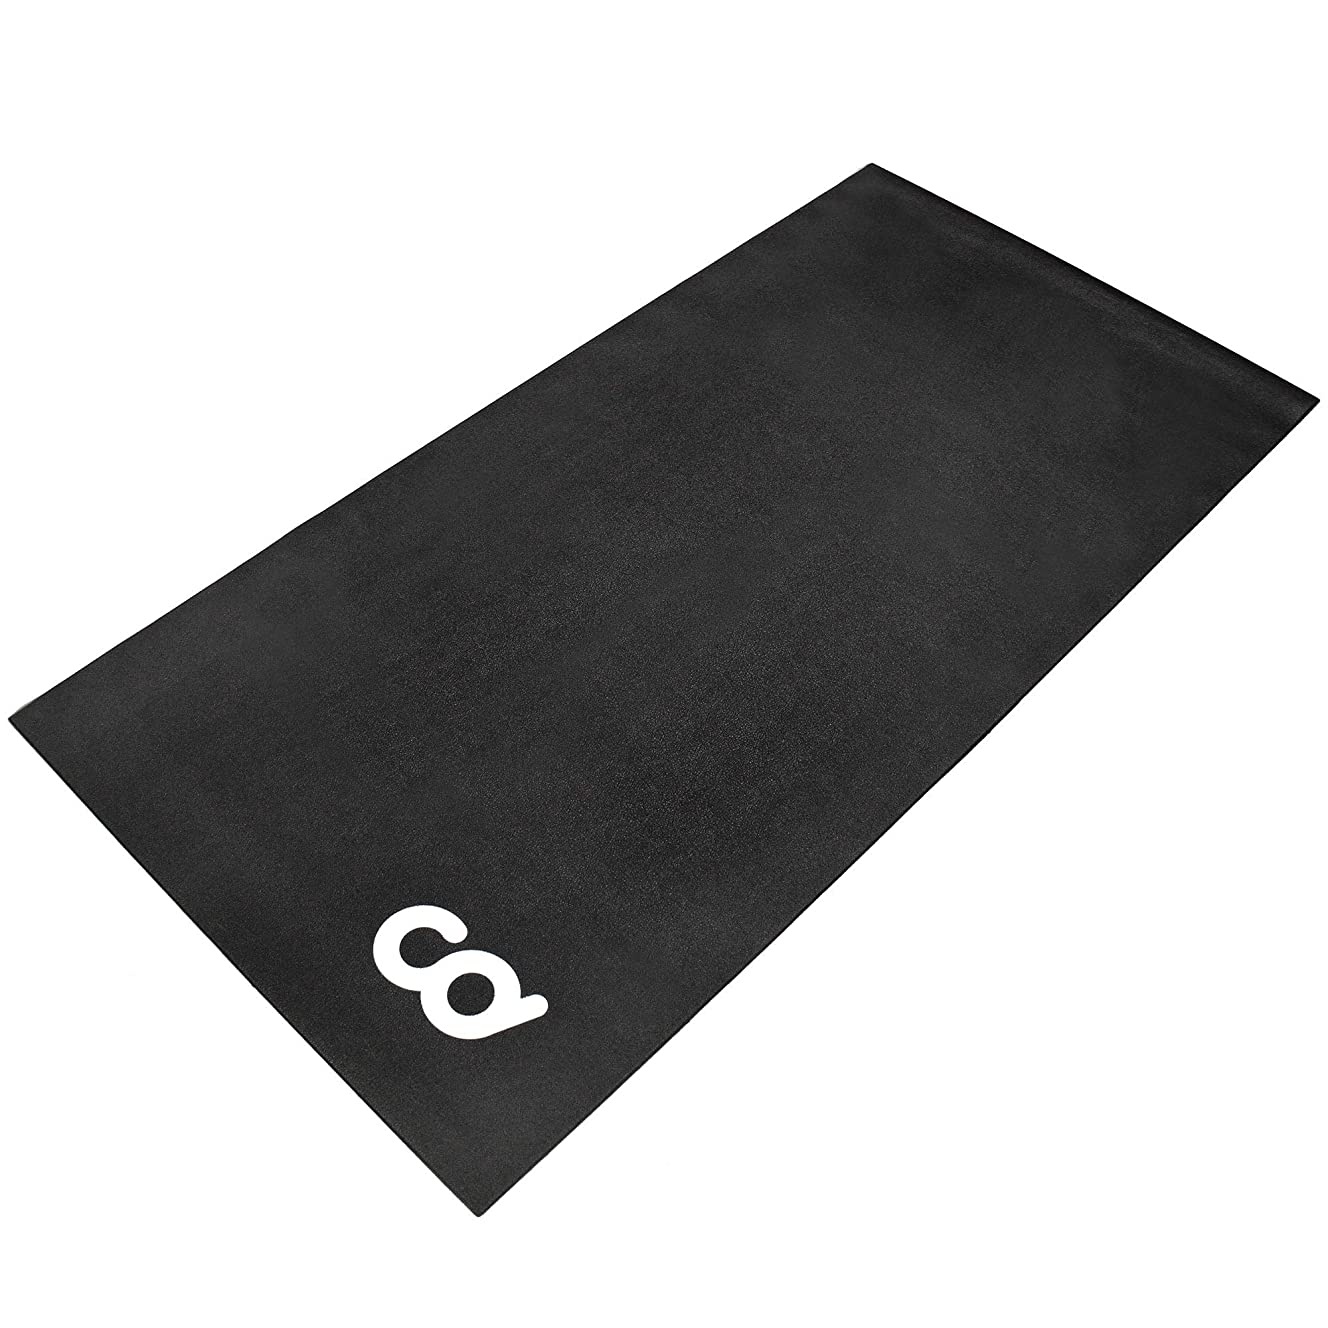 Bike Bicycle Trainer Floor Mat Suits Ergo Mag Fluid for Indoor Cycles Exercise.Stepper for Peloton Spin Bikes